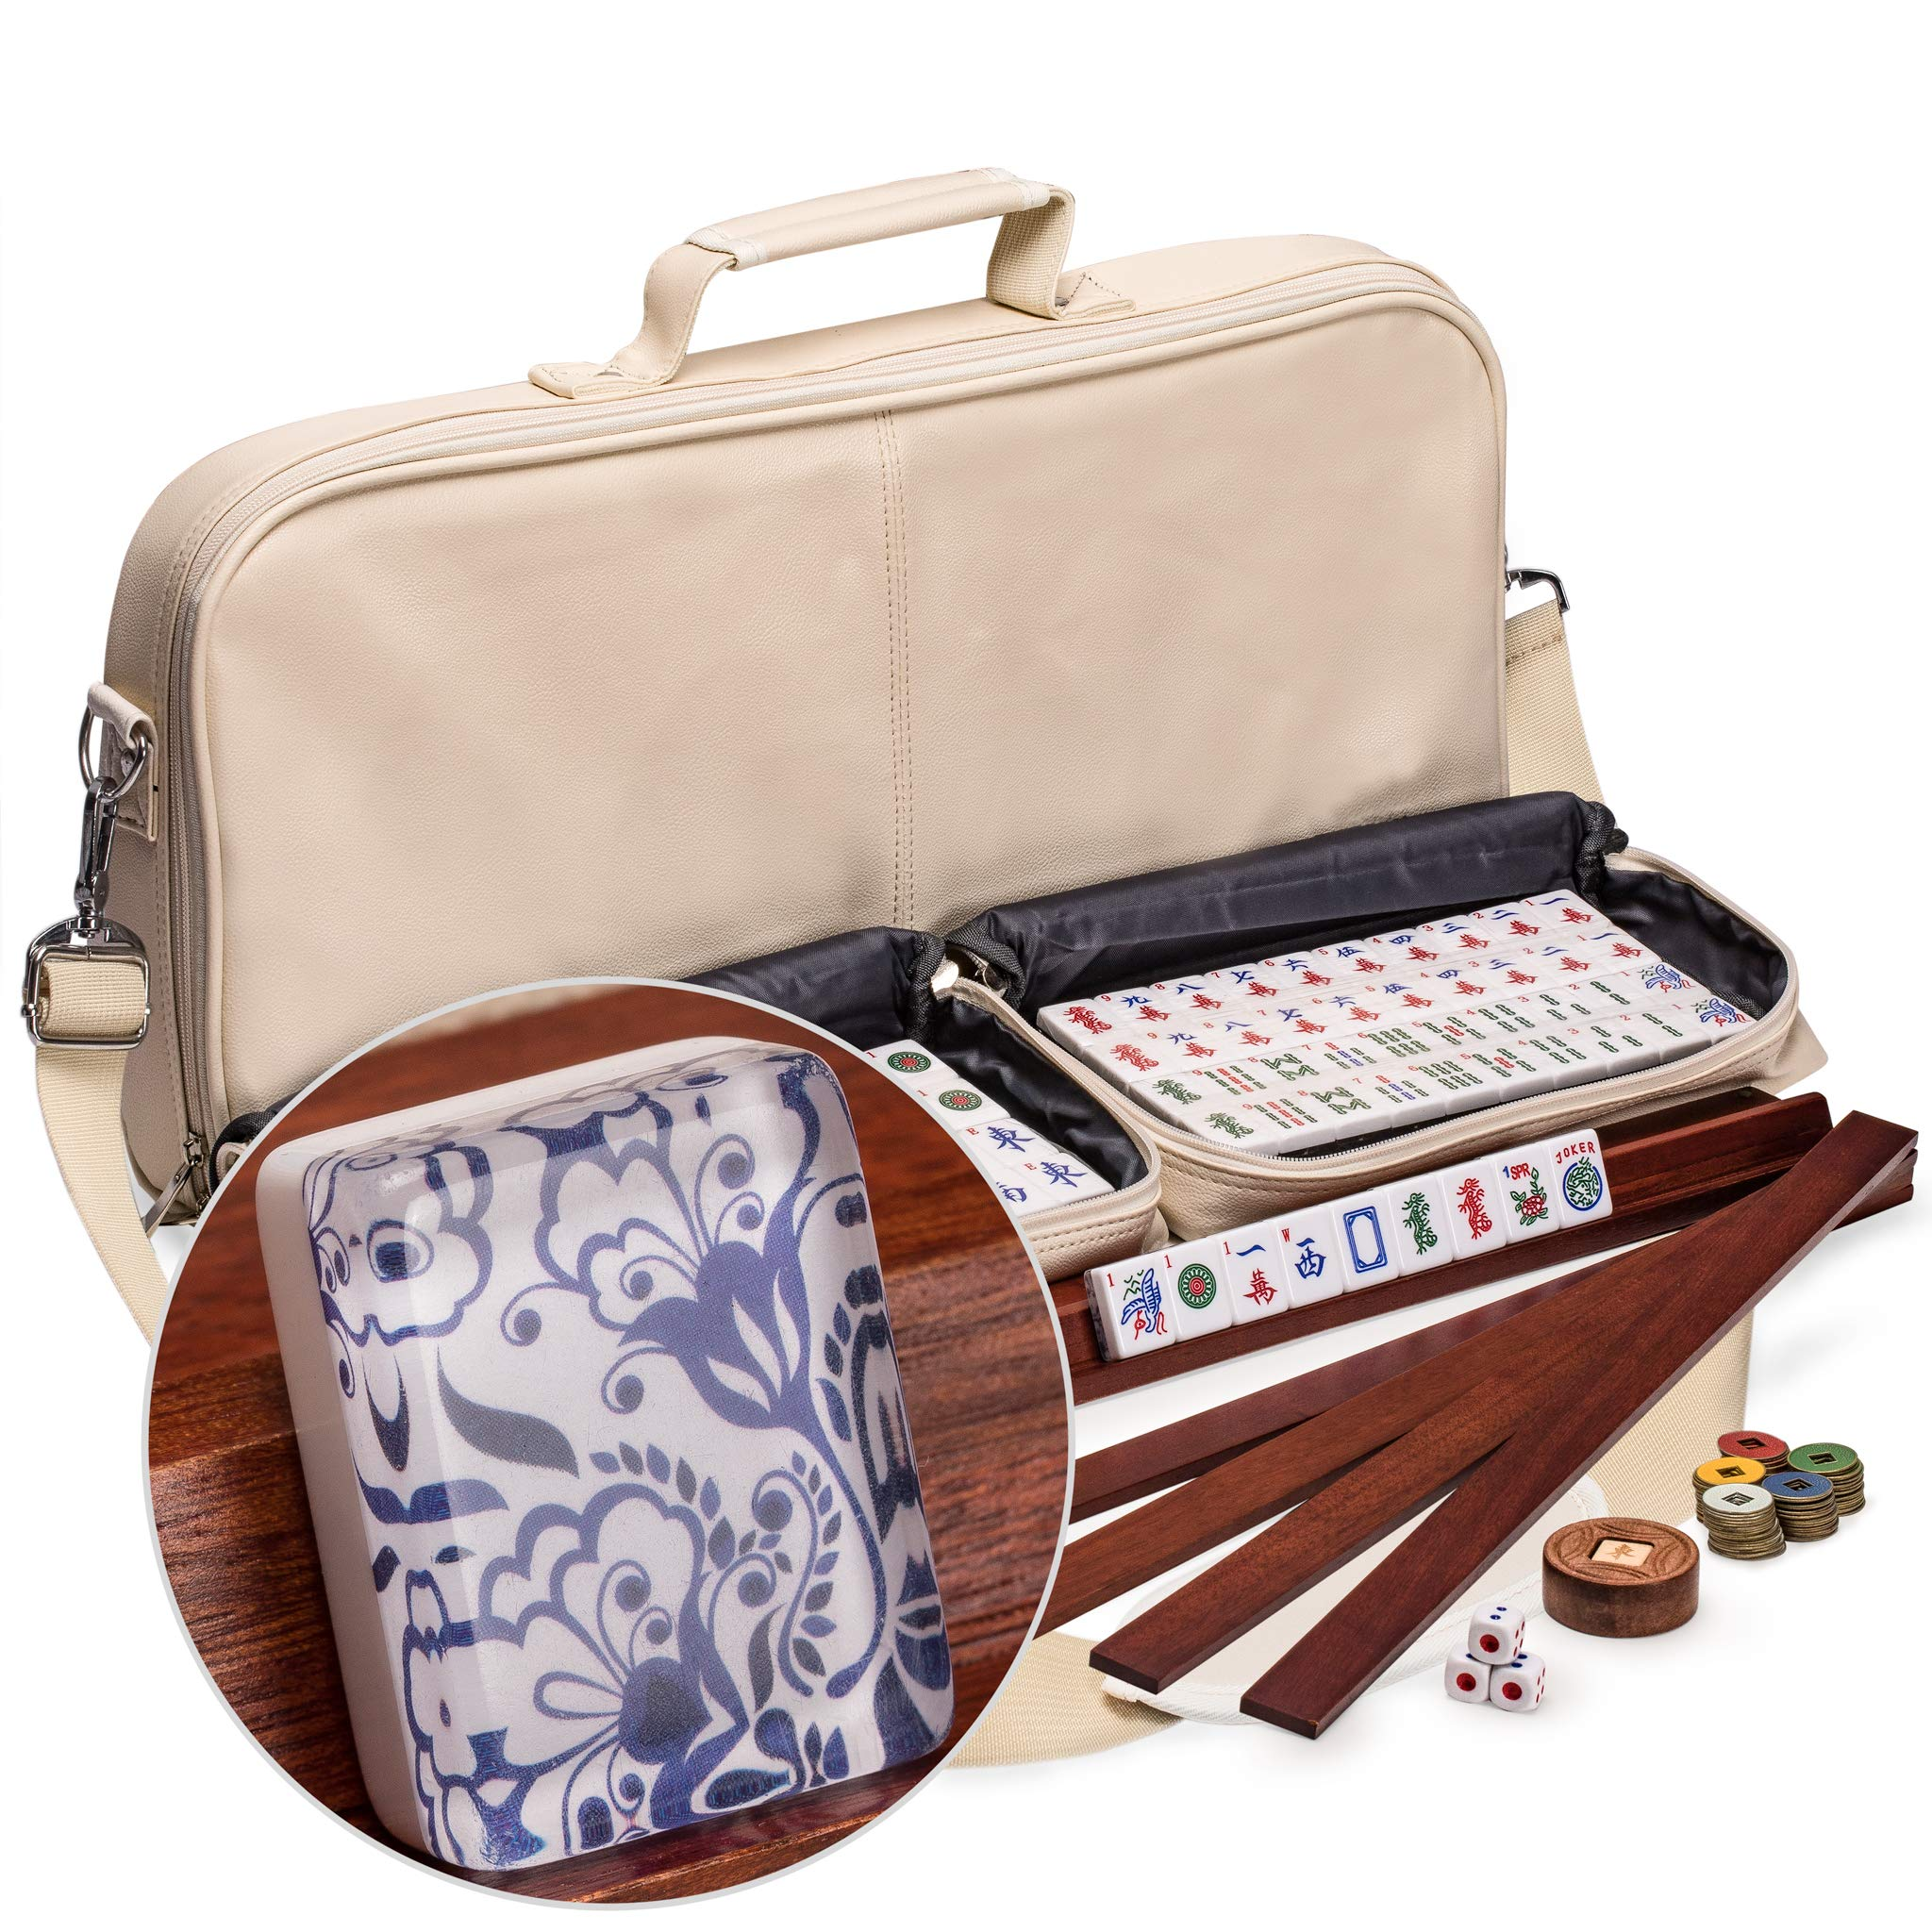 Yellow Mountain Imports American Mahjong Set, Chinoise with 166 Tiles, 4 All-in-One Racks with Pushers, Accessories, and Soft Leatherette Case